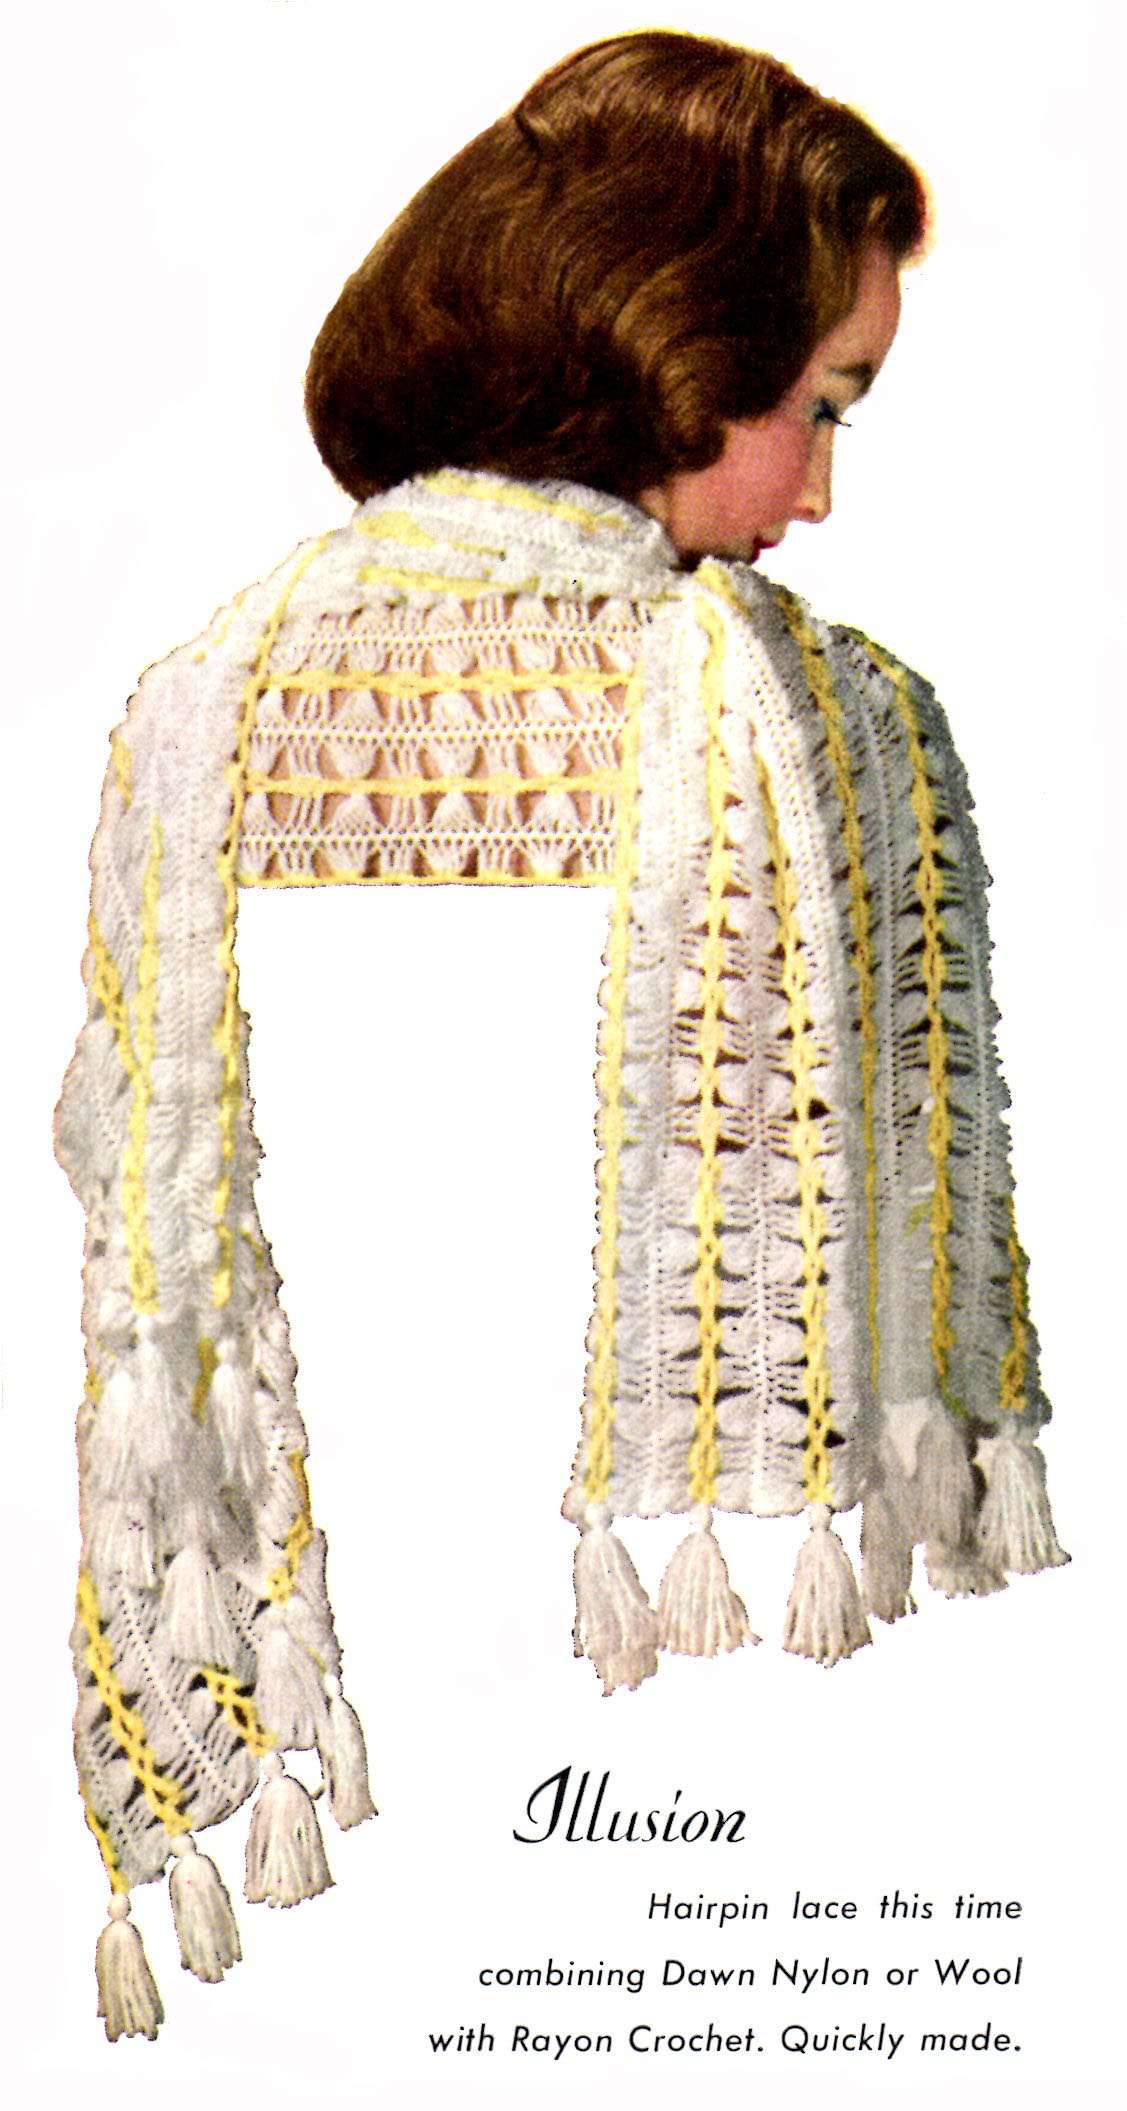 Hairpin Lace Crochet Pattern Illusion Shawl - Vintage Crafts and More